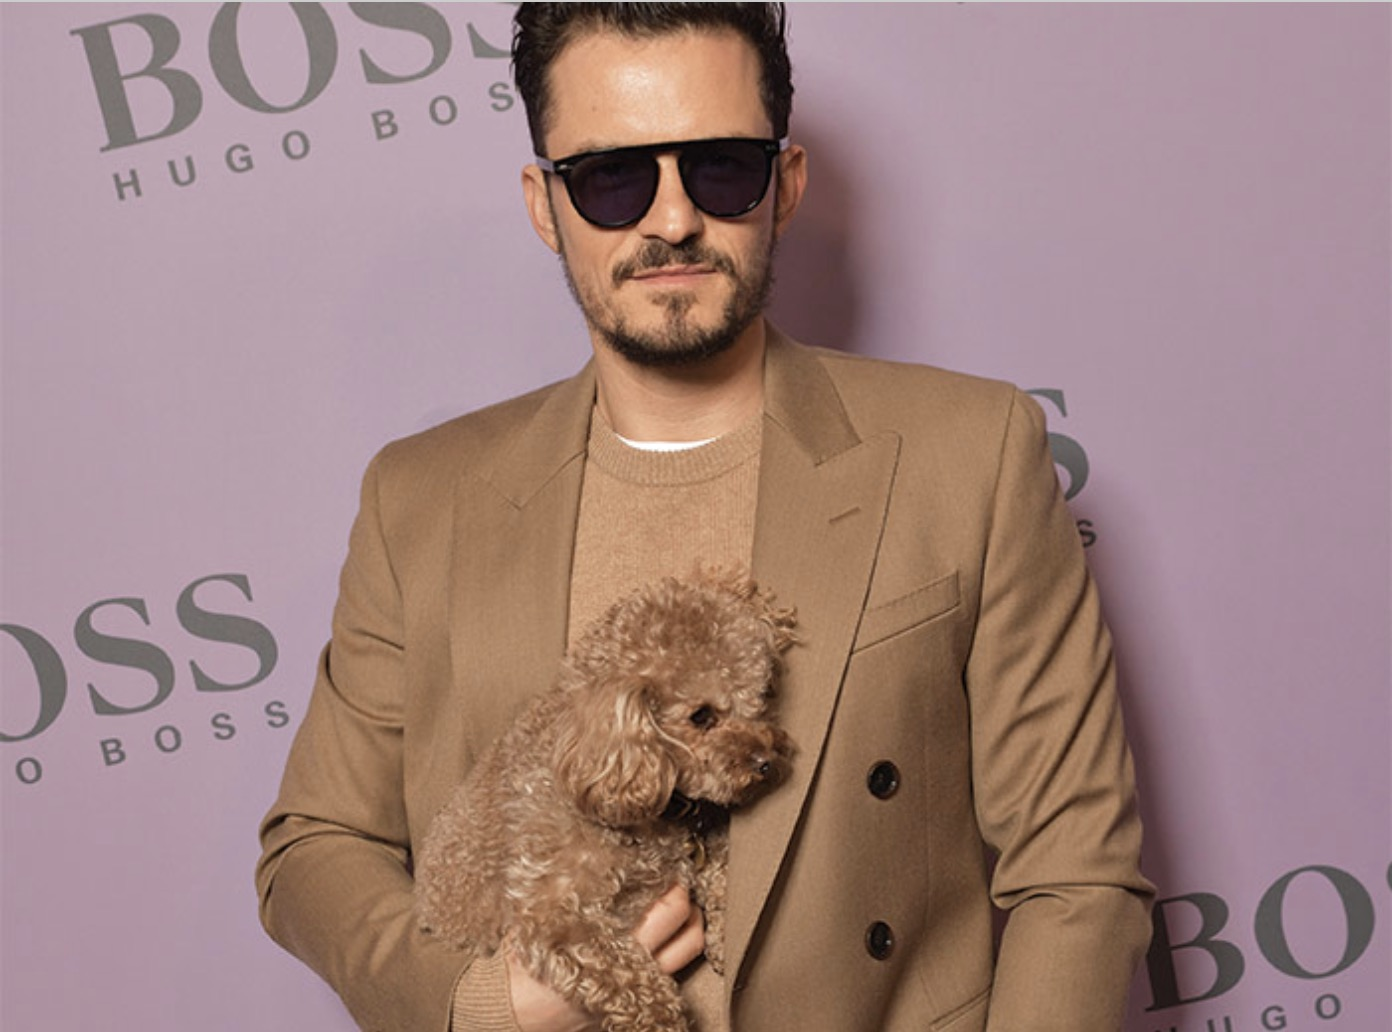 Orlando Bloom in BOSS Sunglasses